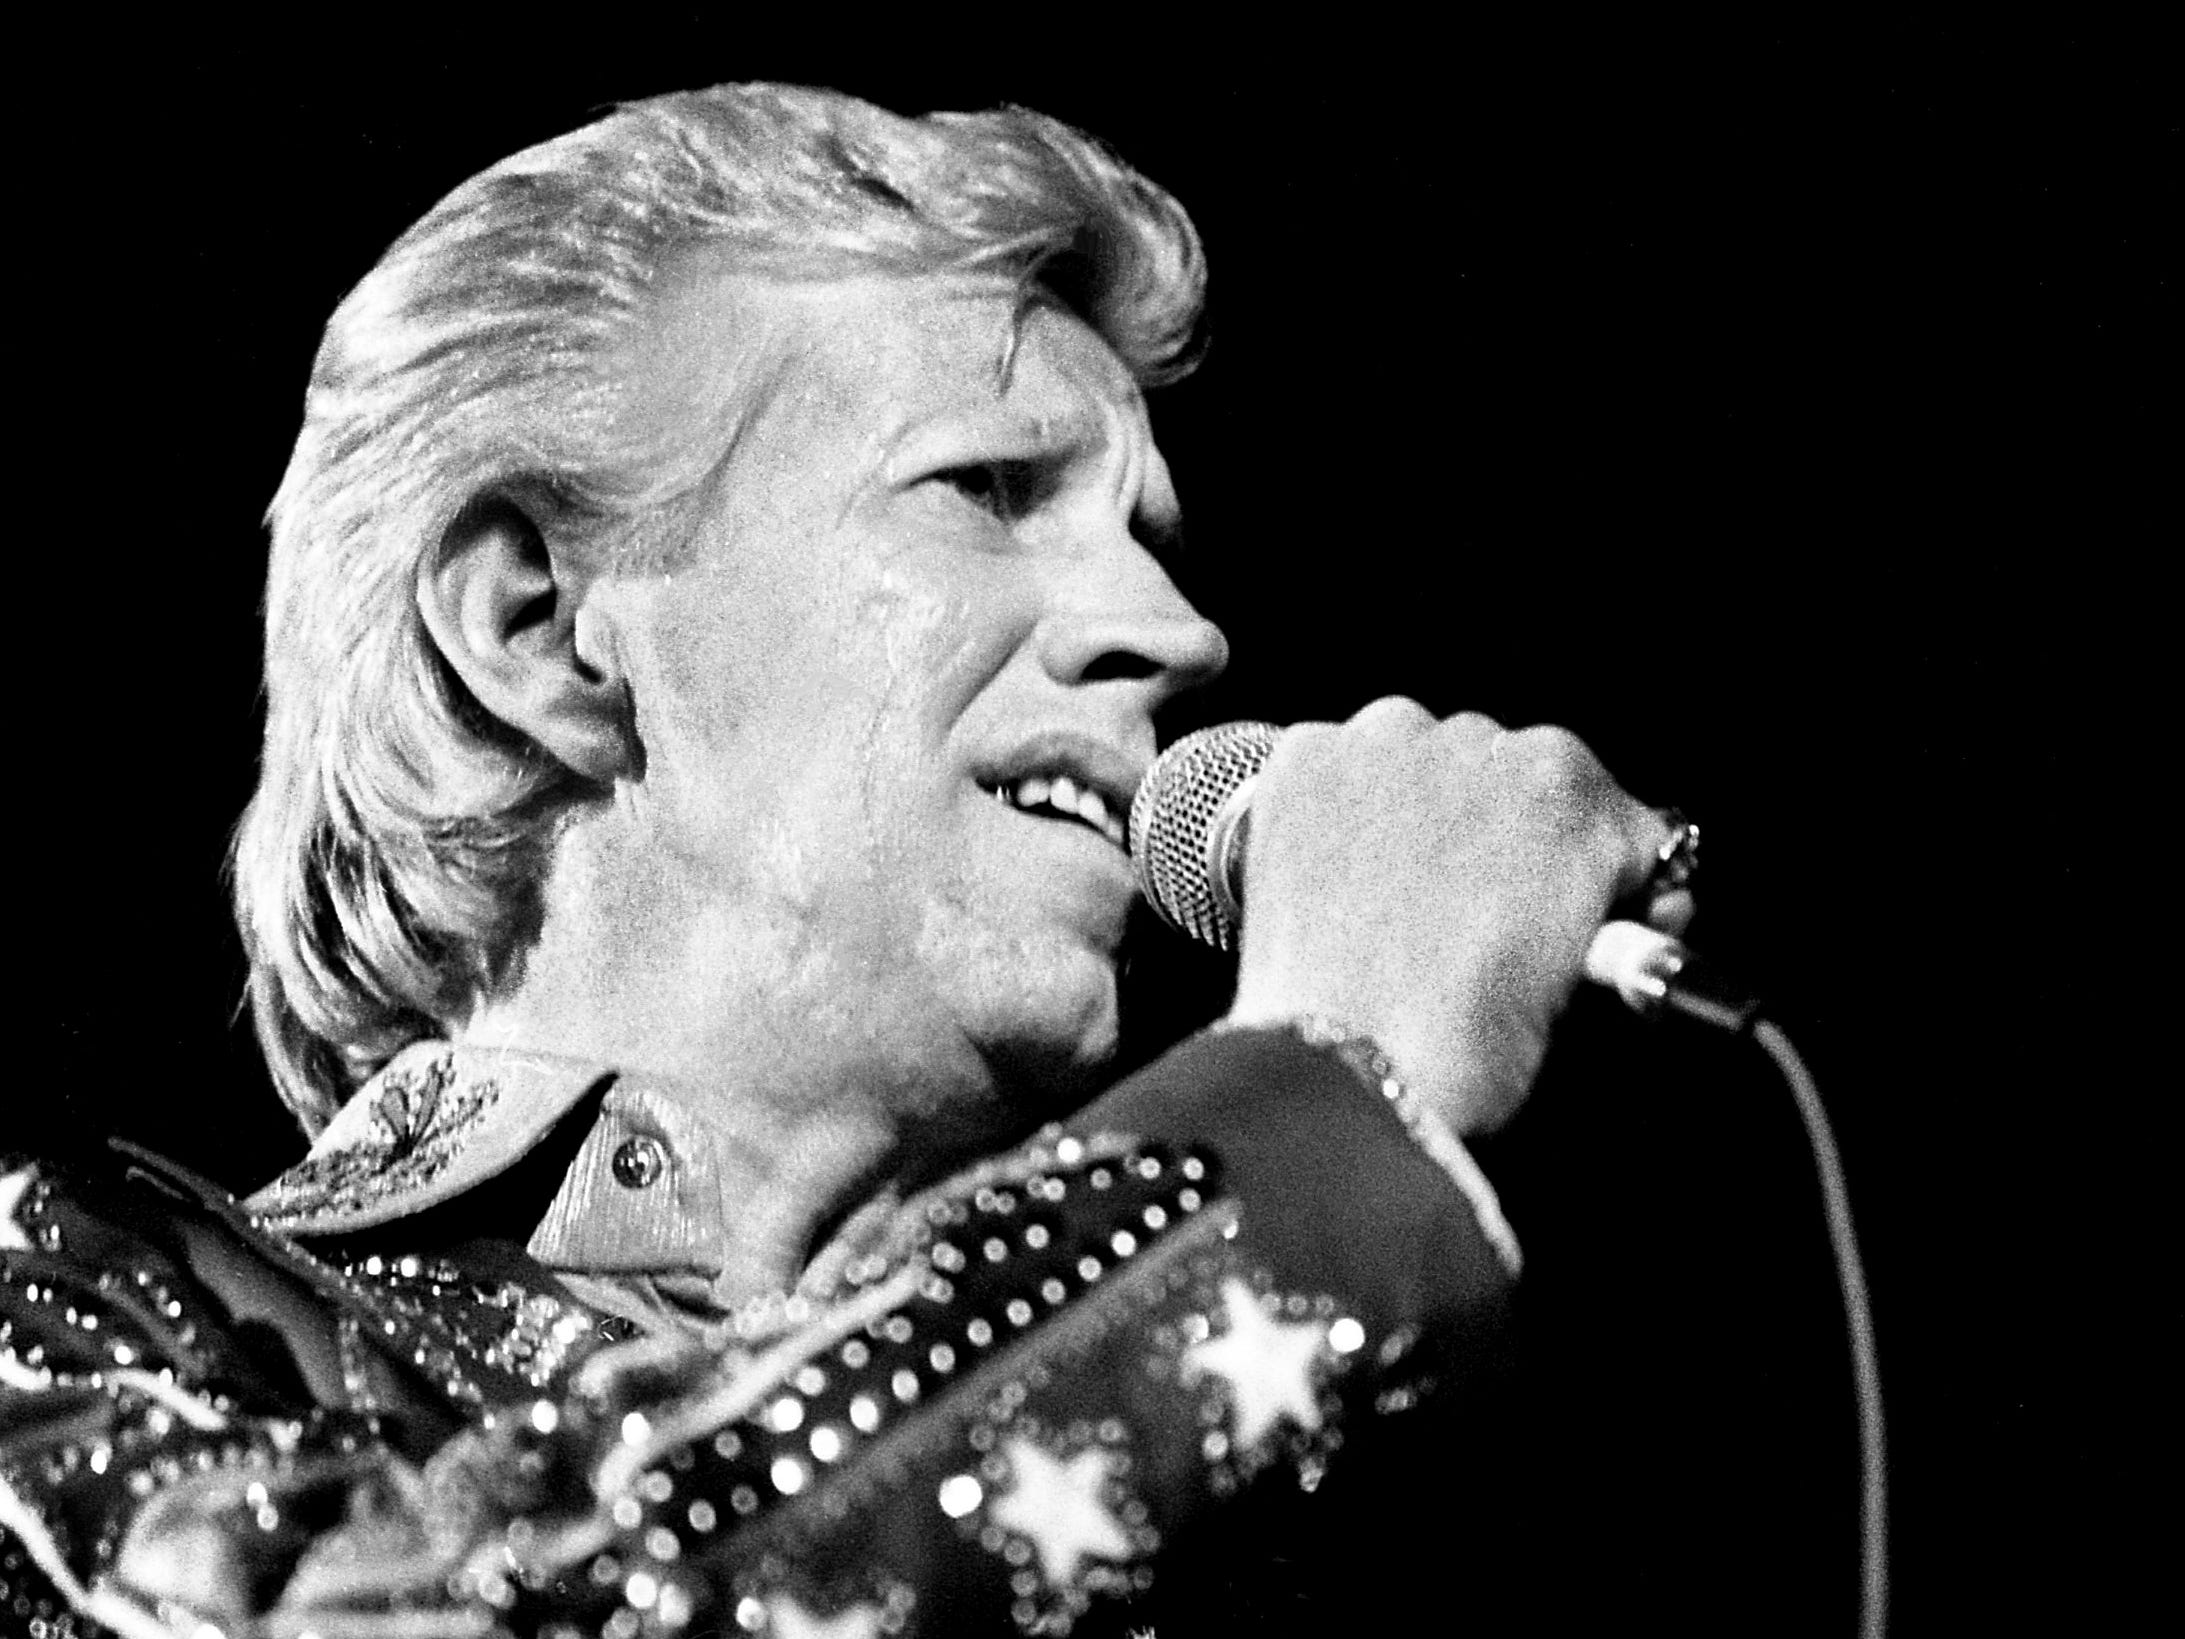 Porter Wagoner is revving up one of his traditional songs before a standing-room-only crowd at the Exit/In Jan. 31, 1979. Wagoner was unquestionably a hit, but his much-anticipated disco debut was a lot closer to the Grand Ole Opry than Studio 54.